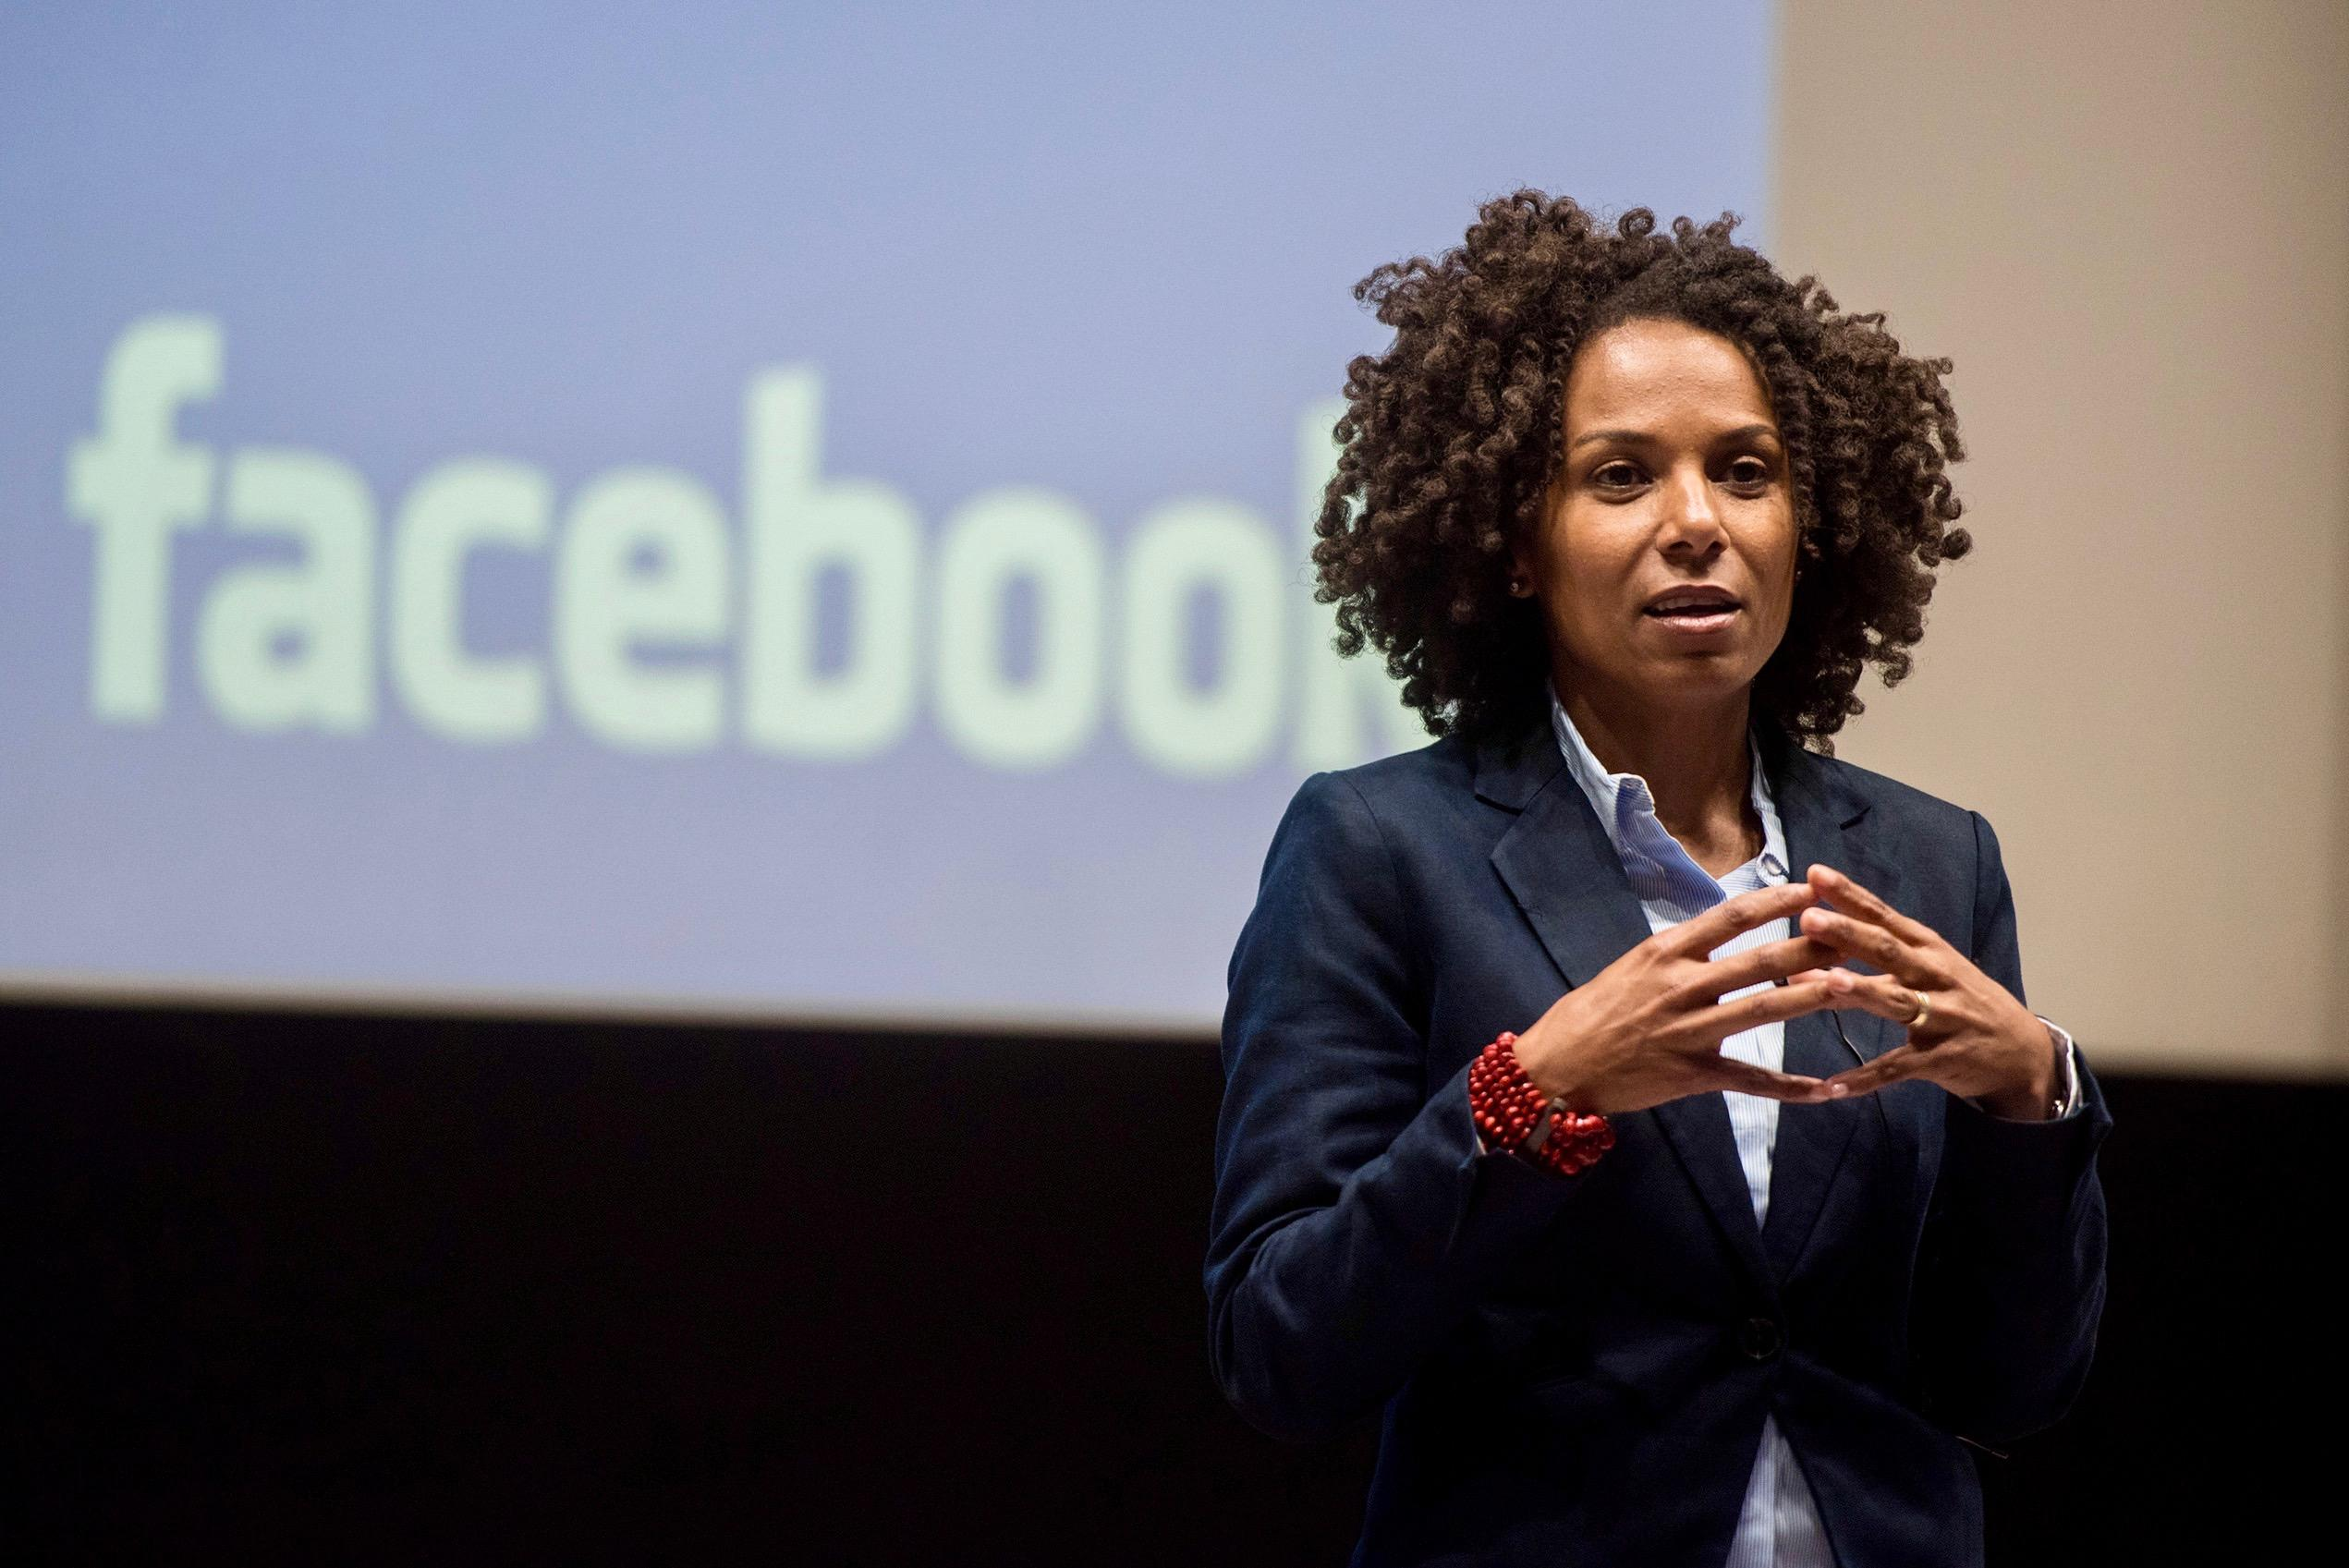 Facebook diversity chief: 'We are not in the business of giving away jobs'